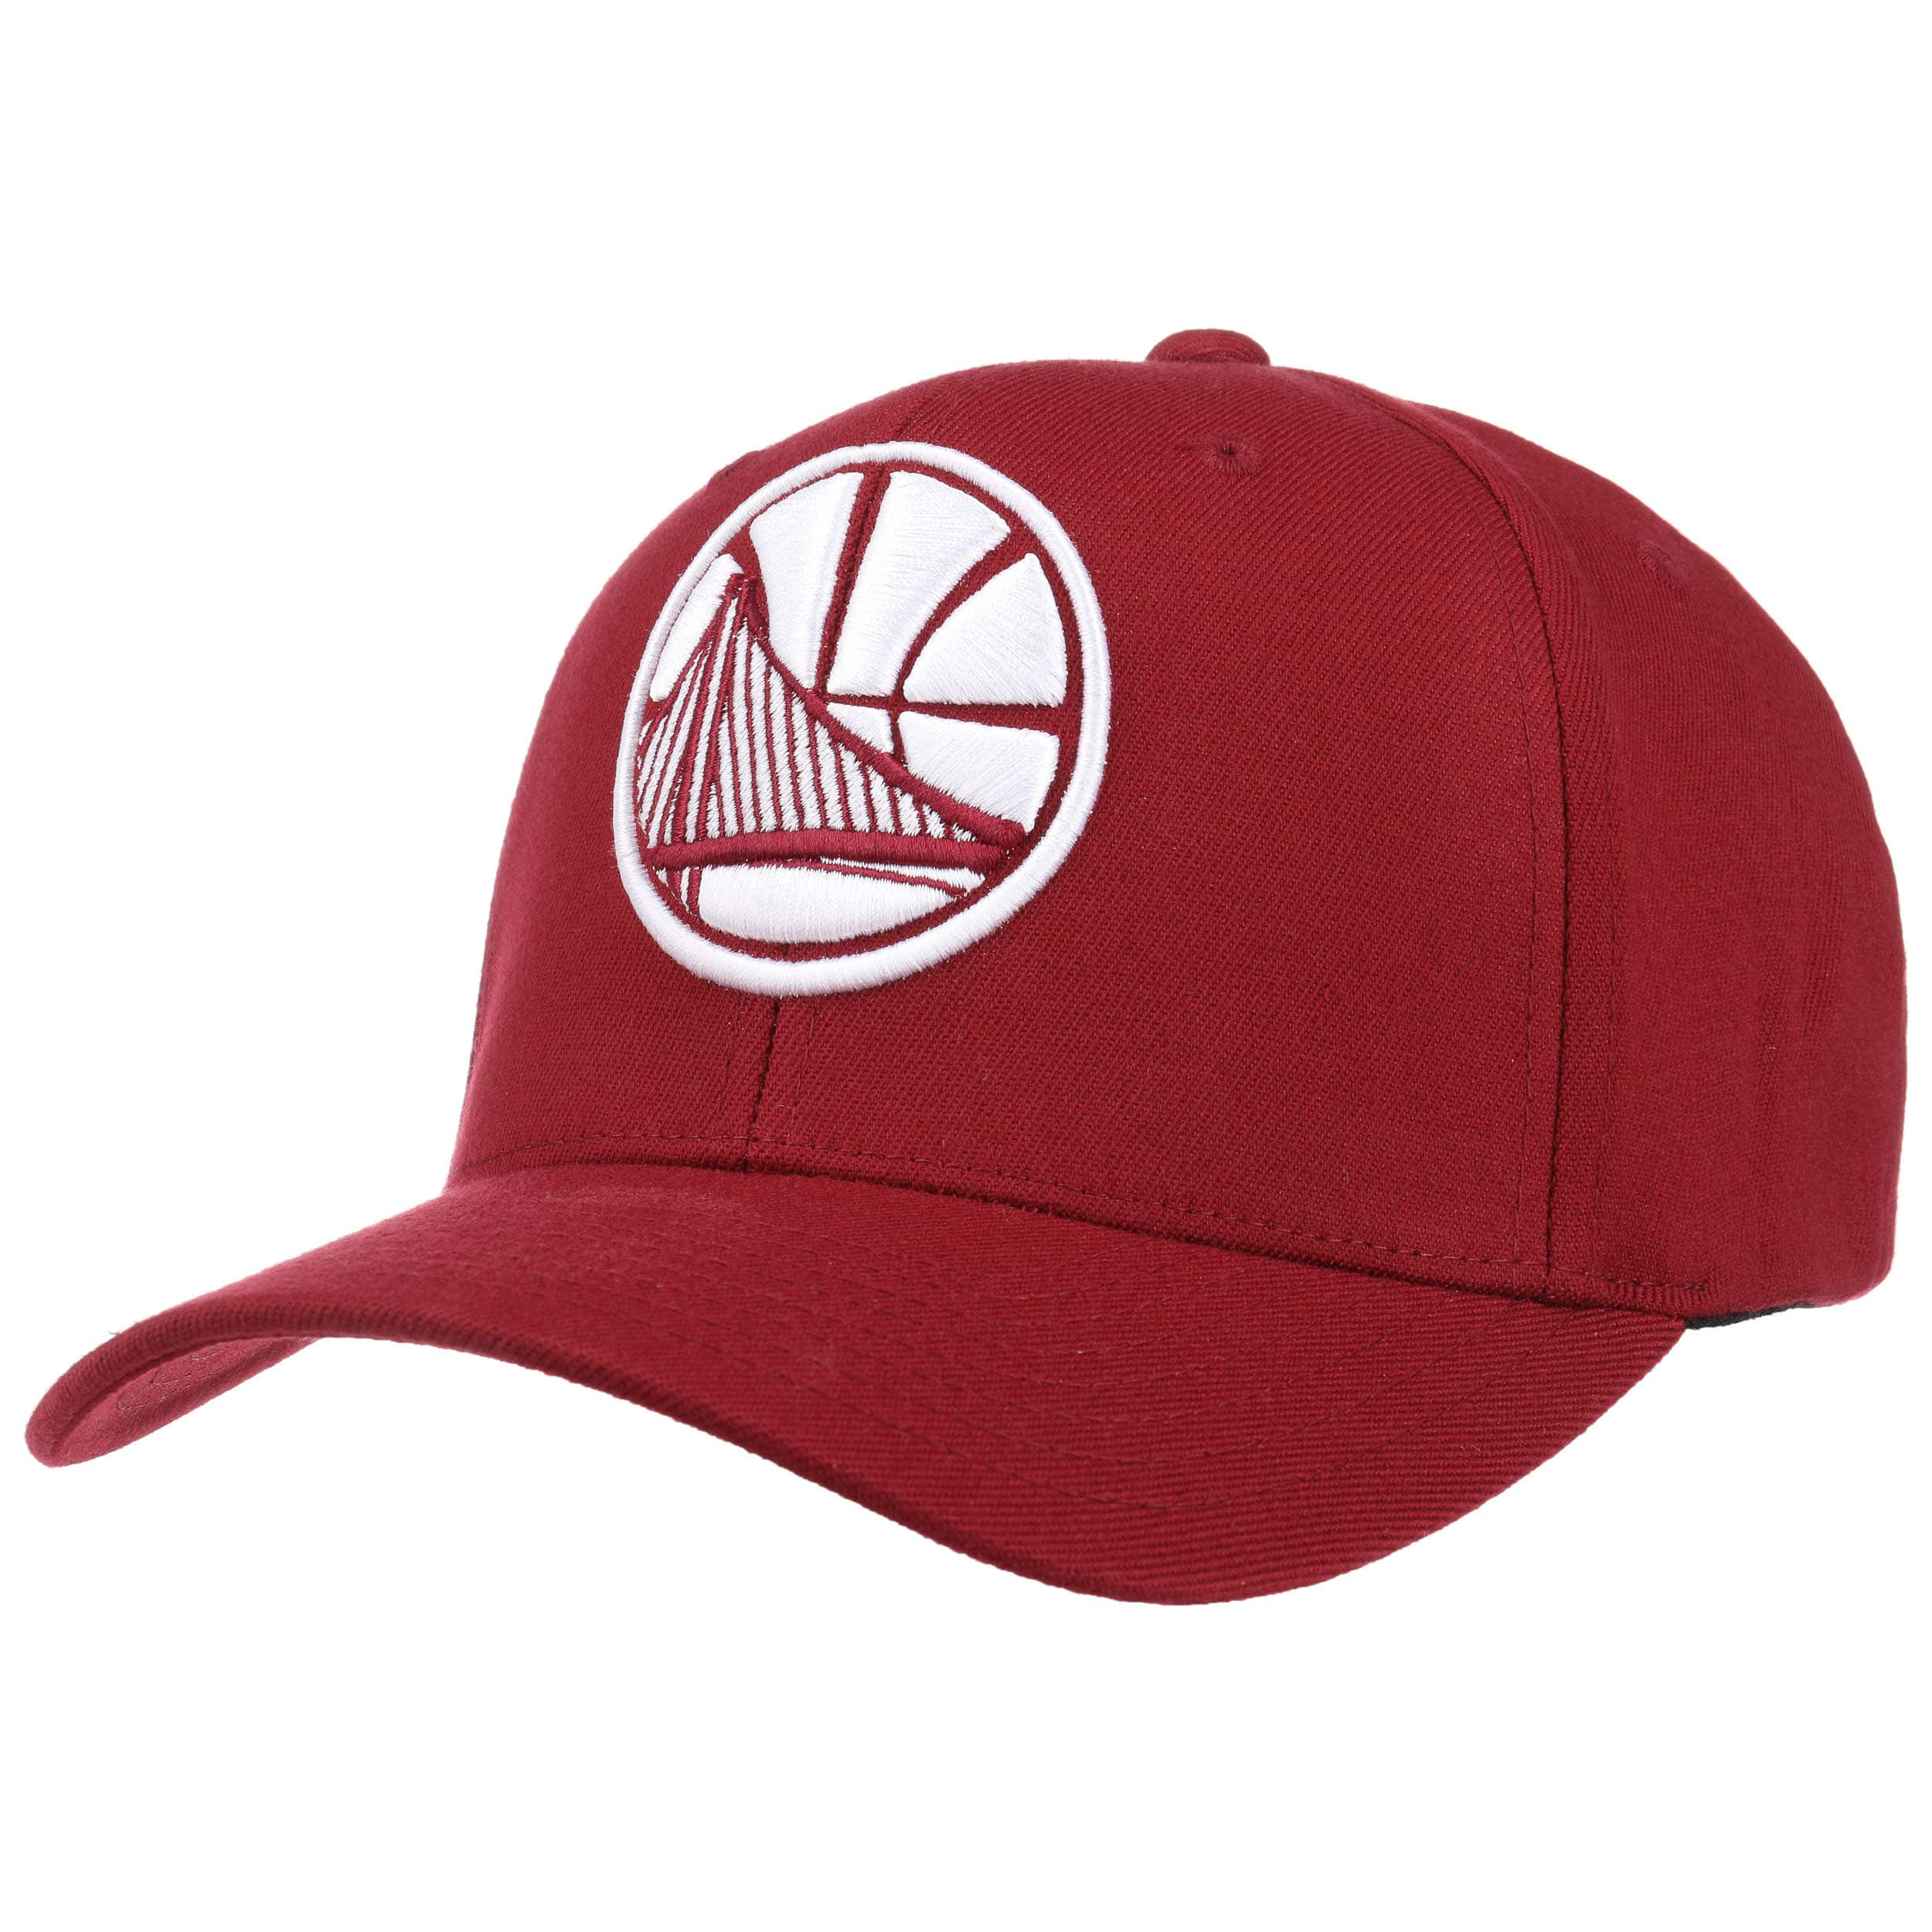 1f0310658b0c2 ... Gorra 110 Burgundy Warriors by Mitchell   Ness - burdeos 6